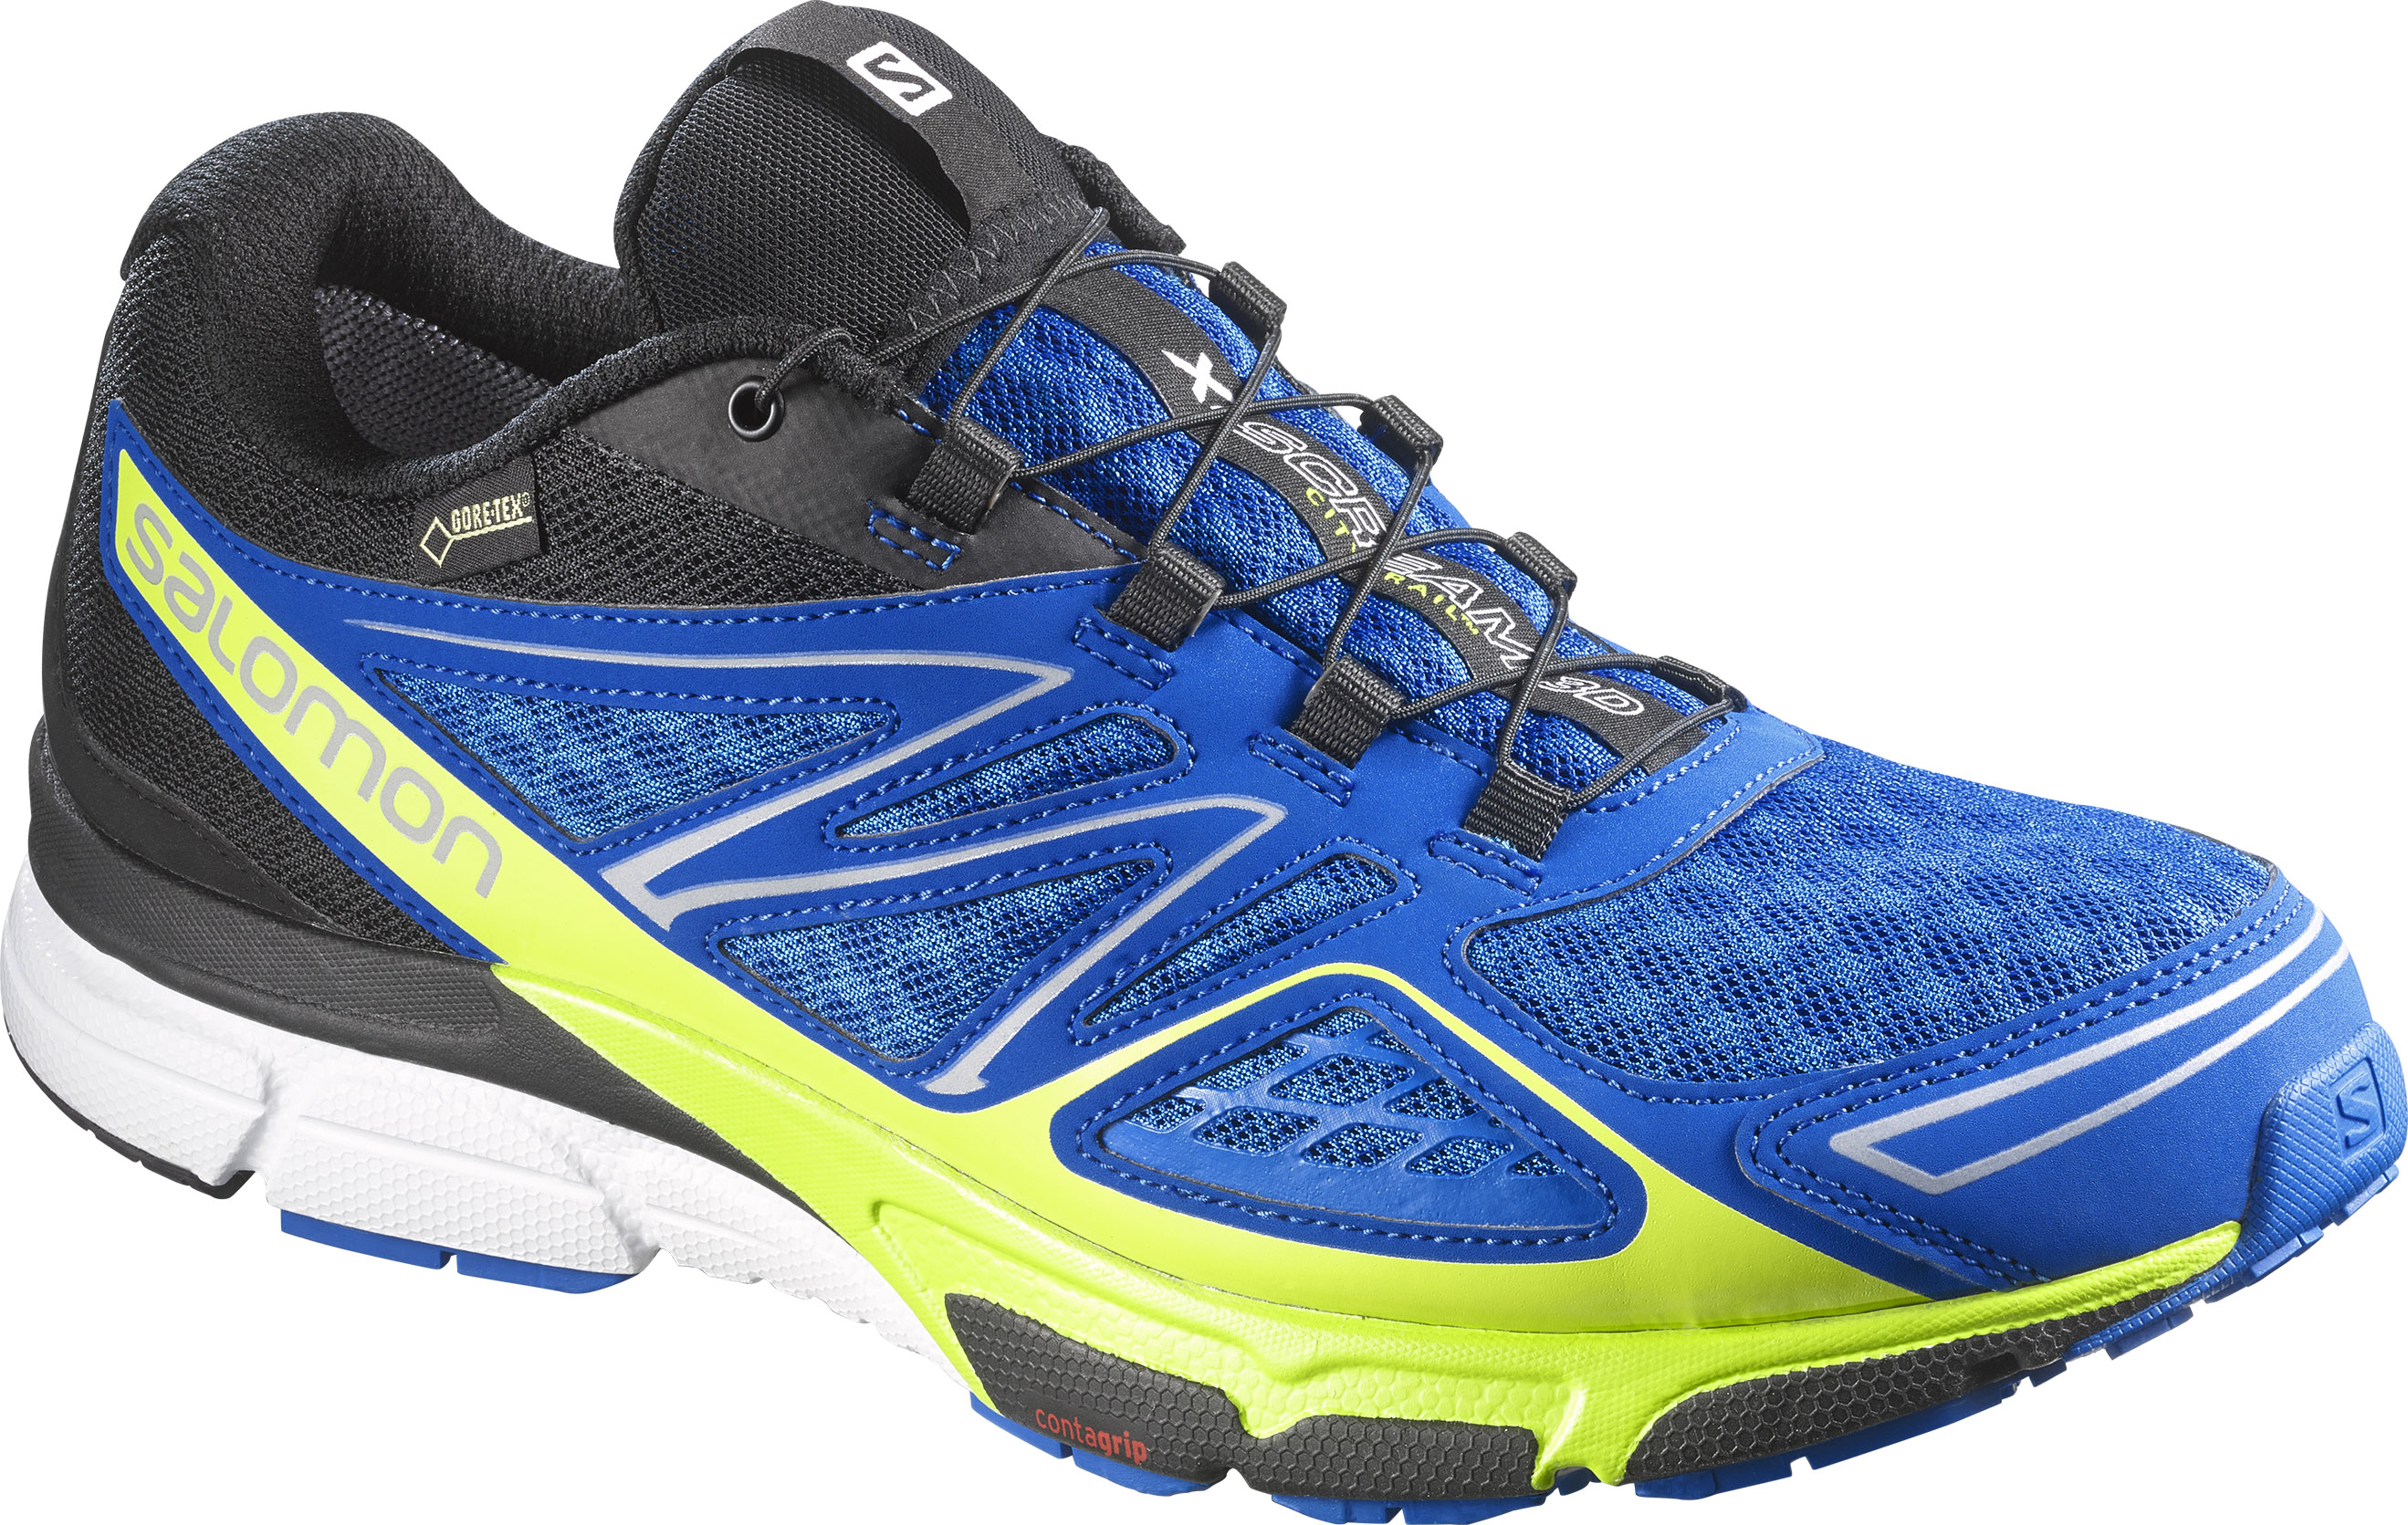 Salomon X-Scream 3D GTX 375965 44